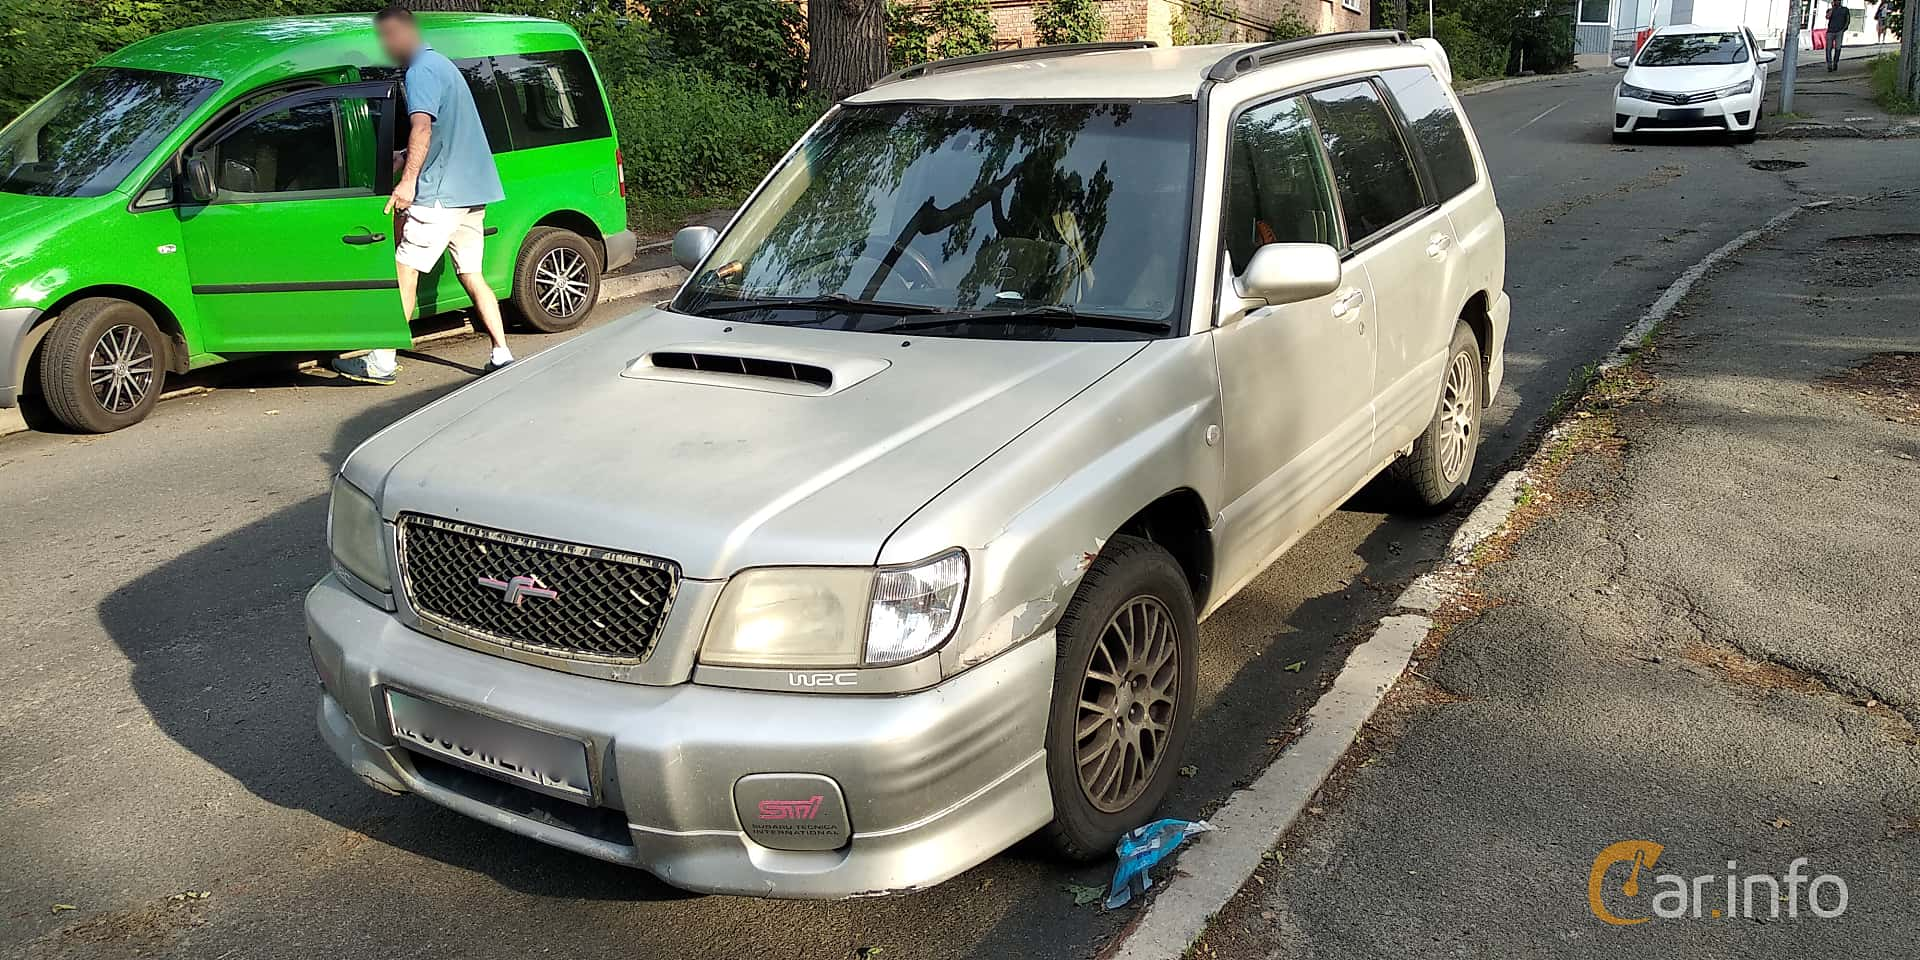 4 images of subaru forester sti 2 0 4wd manual 250hp 2001 by pavelyakovenko 4 images of subaru forester sti 2 0 4wd